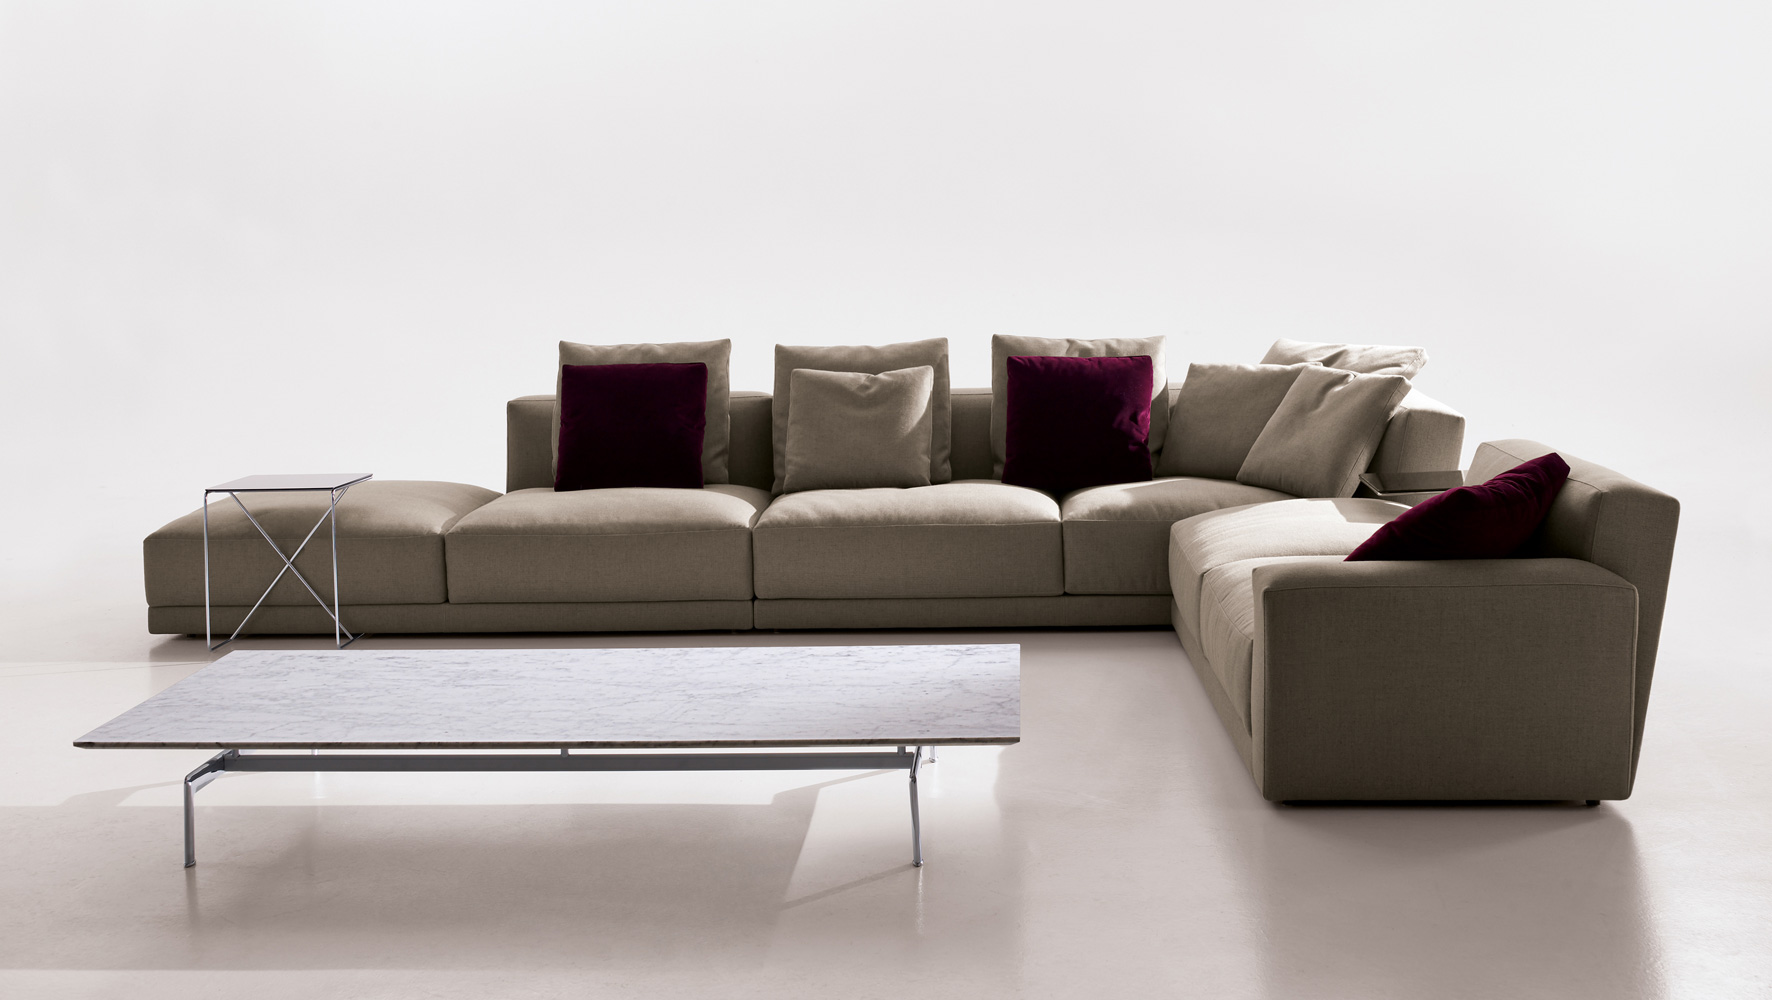 luis modular sofa b b italia muebles productos e interiors. Black Bedroom Furniture Sets. Home Design Ideas